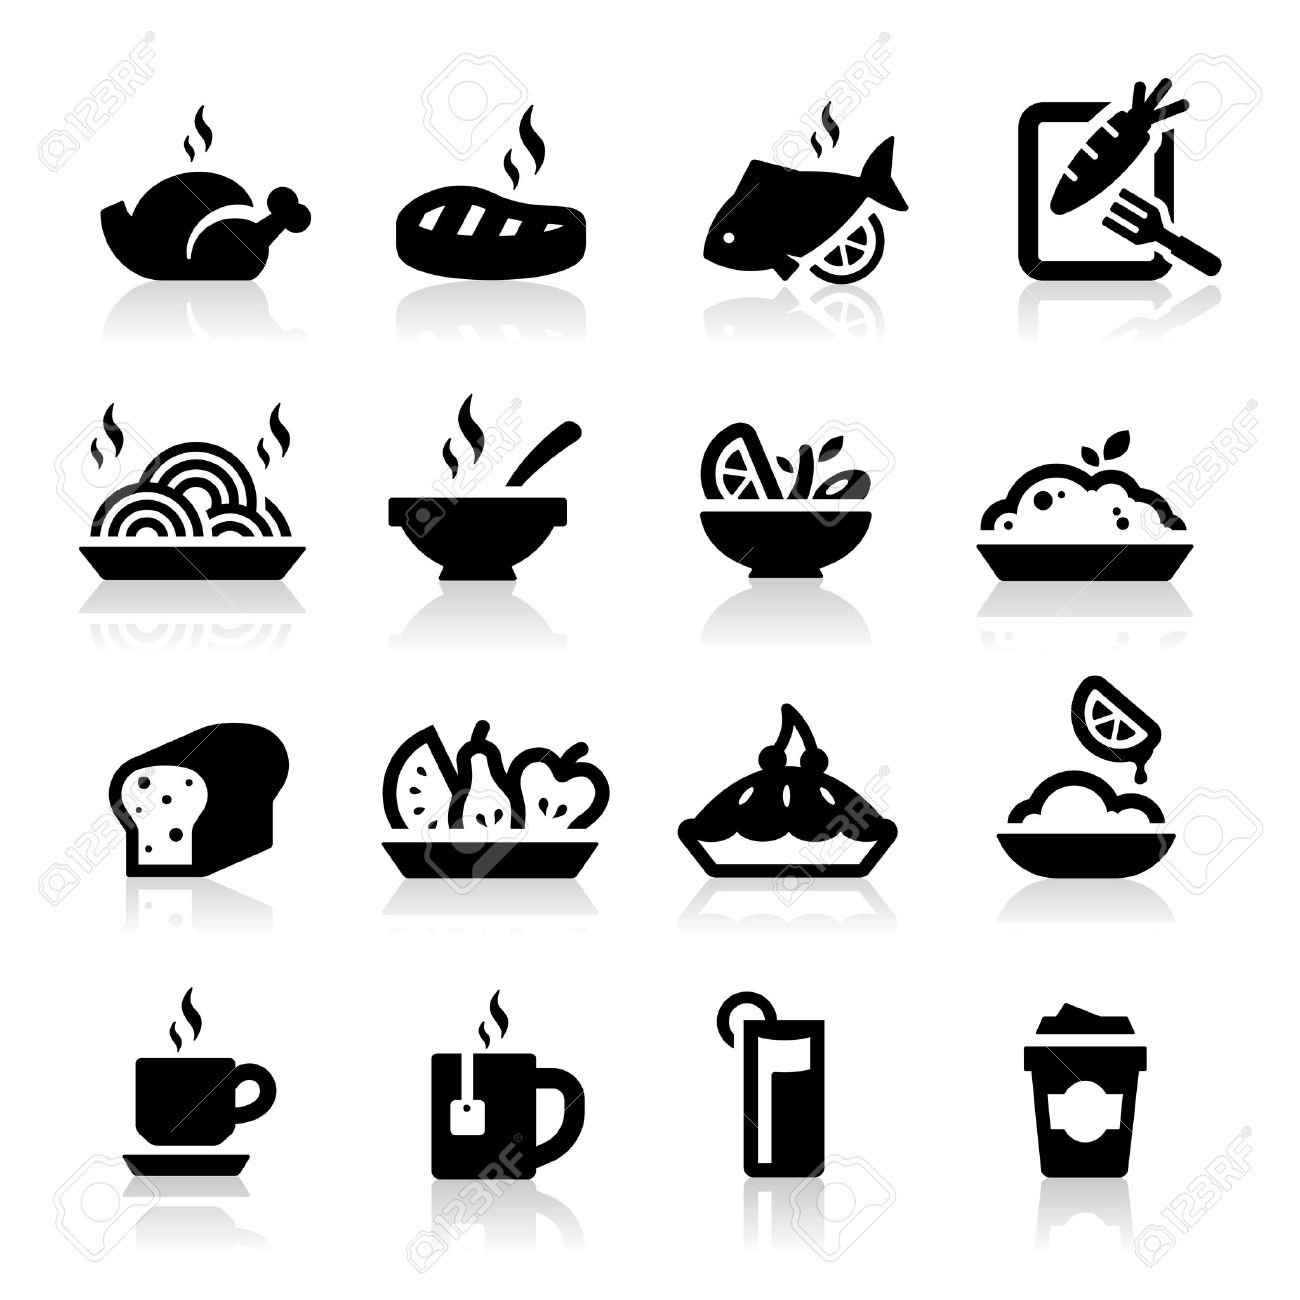 14,976 Elegant Food Stock Vector Illustration And Royalty Free ... banner free library